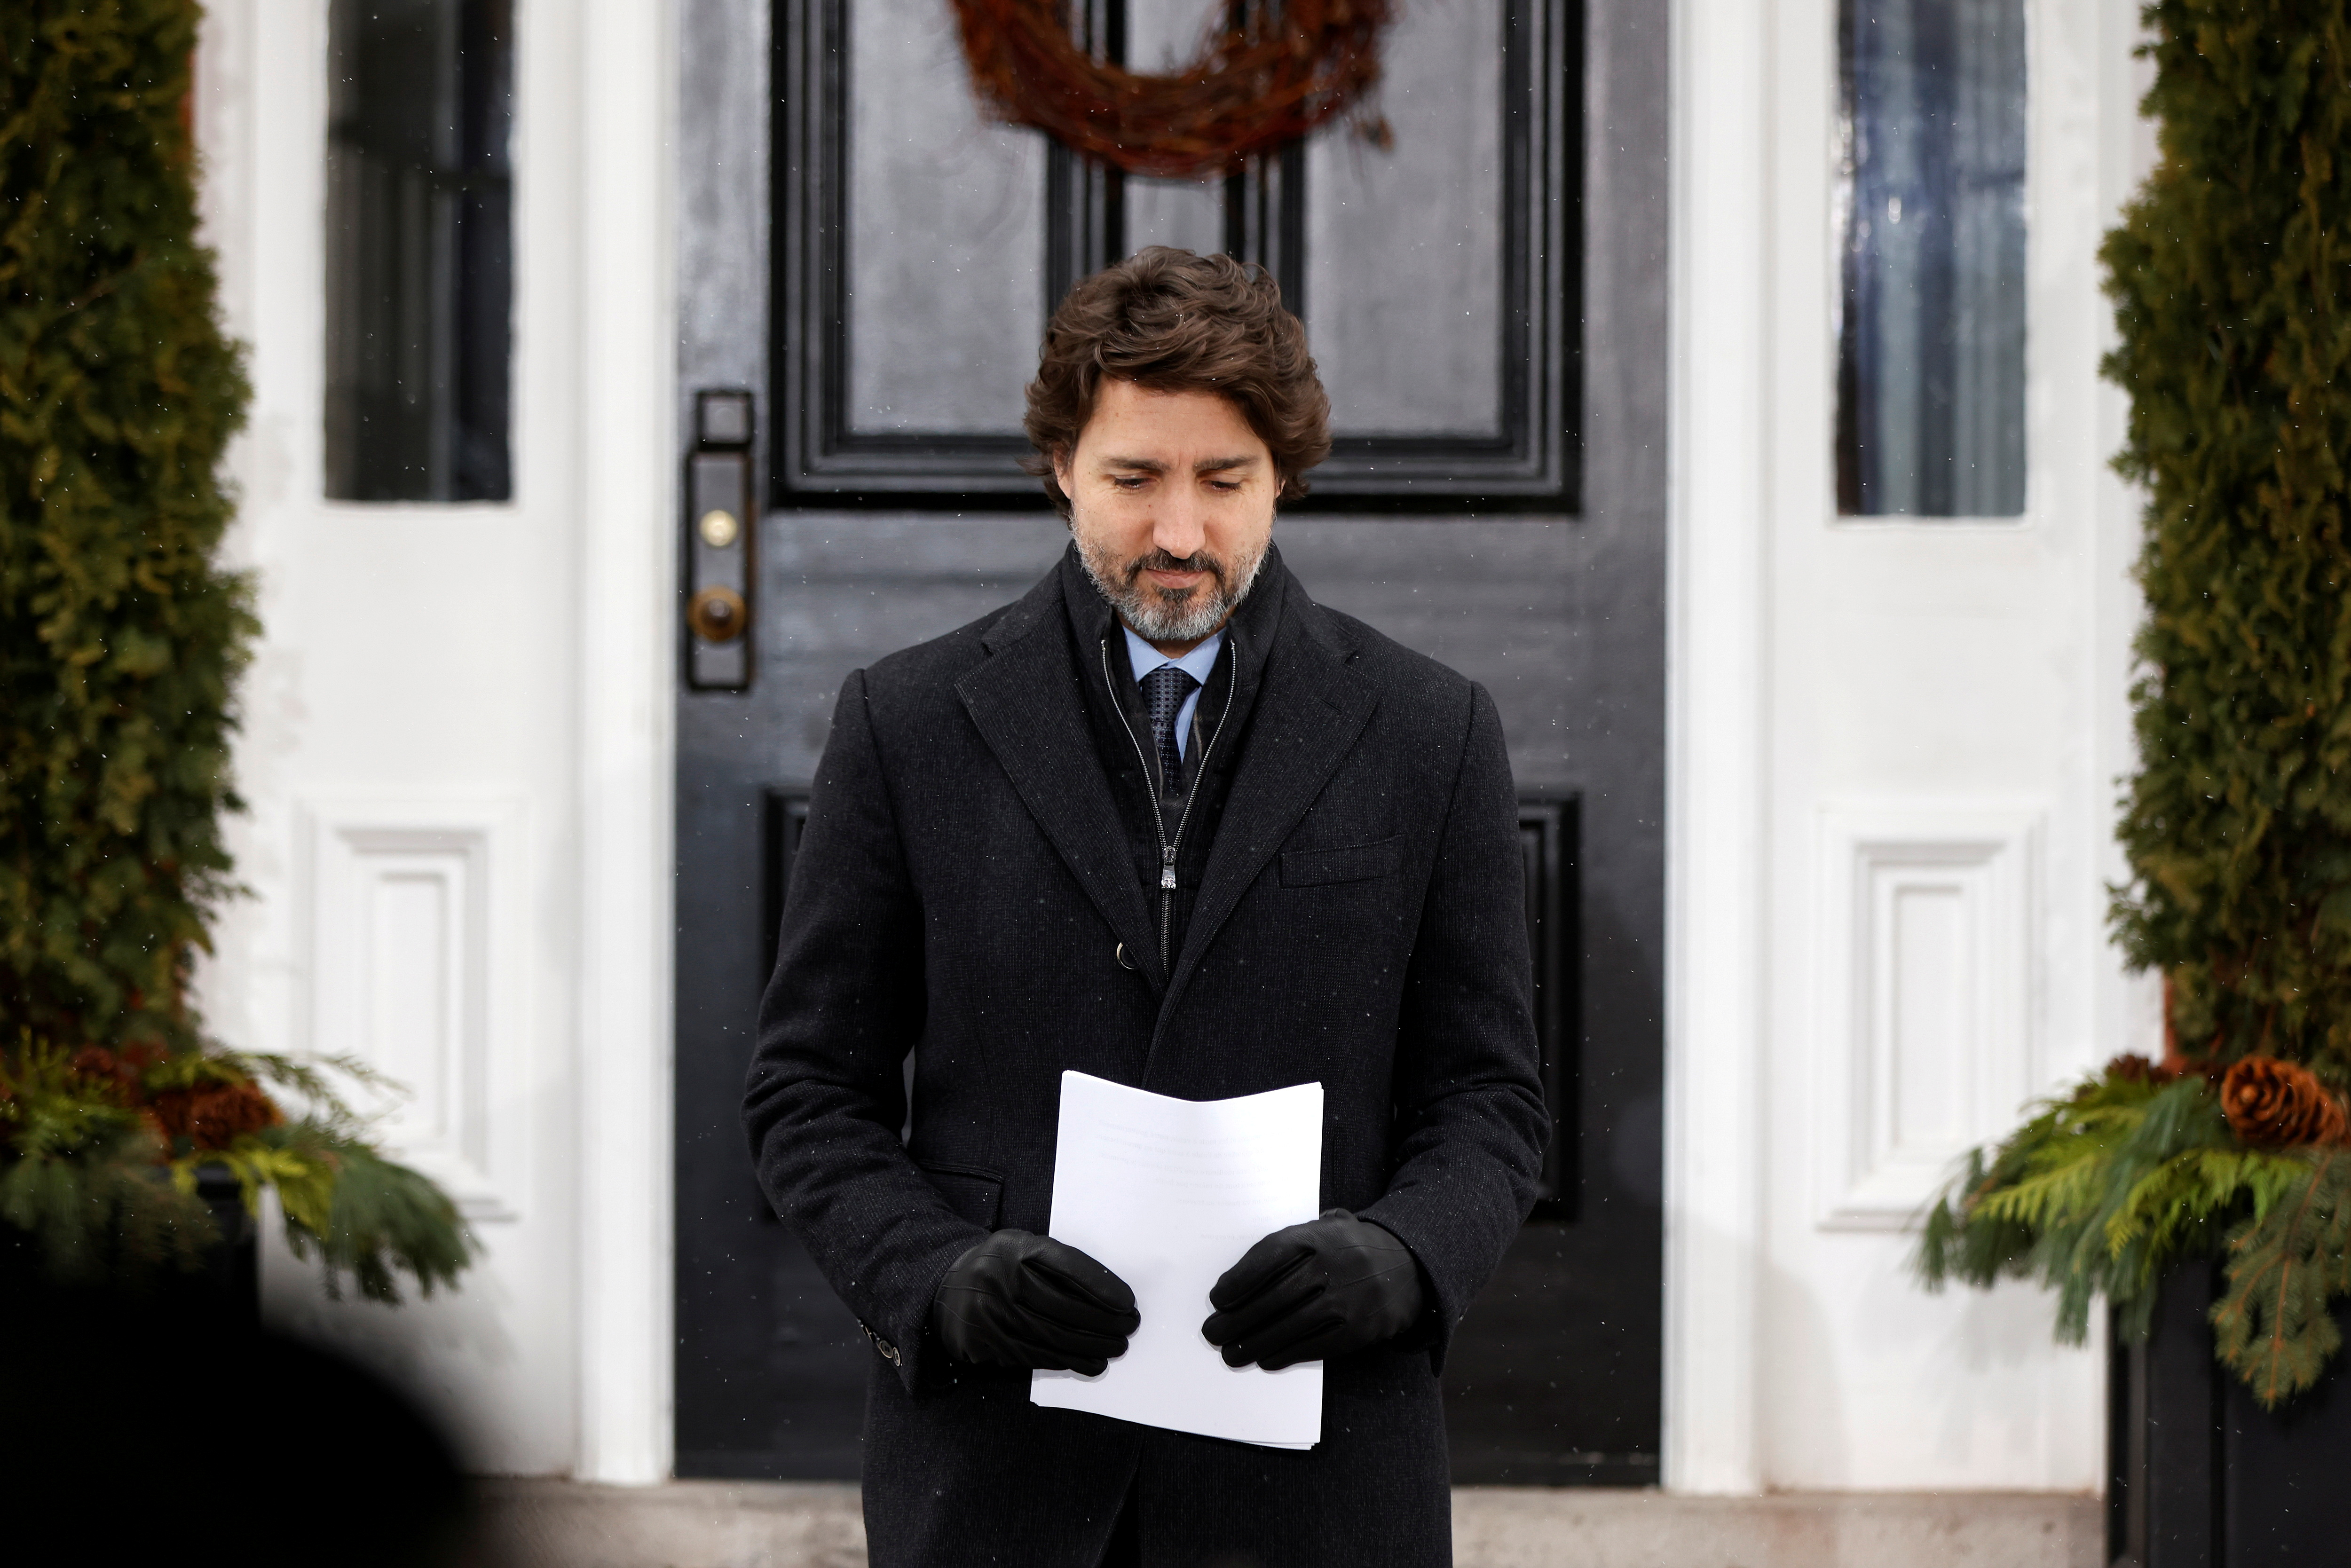 Canada's Prime Minister Justin Trudeau arrives to a news conference at Rideau Cottage, as efforts continue to help slow the spread of the coronavirus disease (COVID-19), in Ottawa, Ontario, Canada January 5, 2021. REUTERS/Blair Gable/File Photo